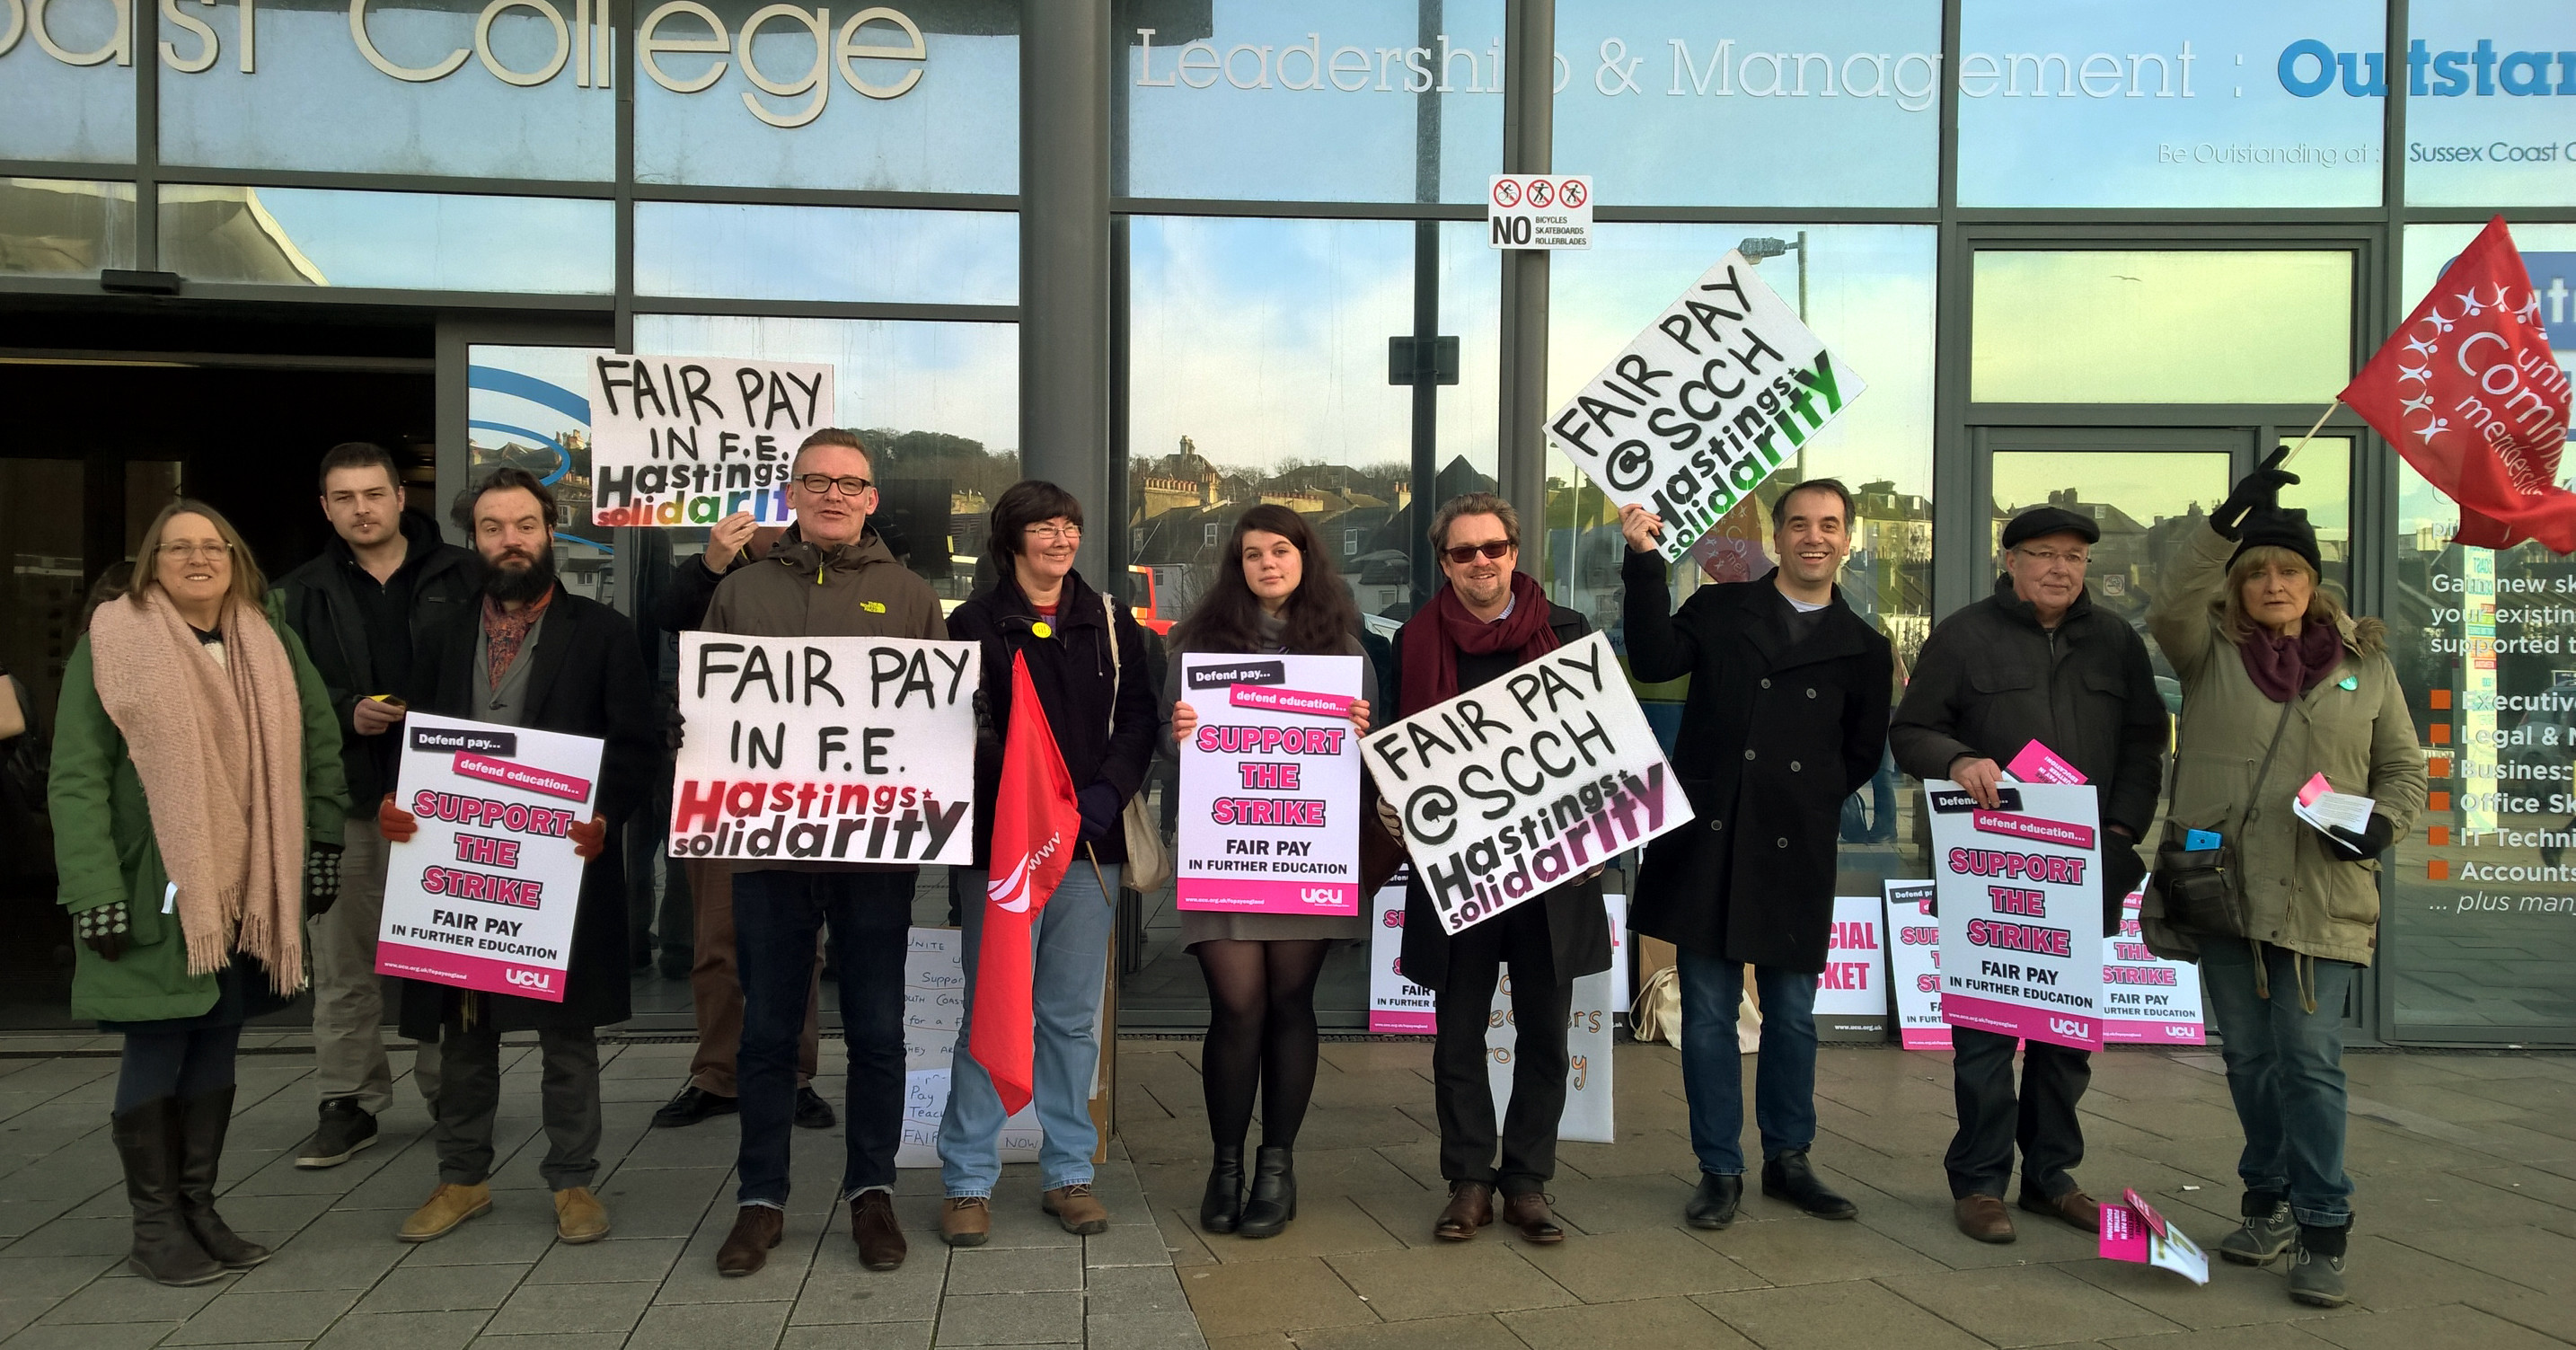 UCU and Unison picket line Sussex Coast College Hastings